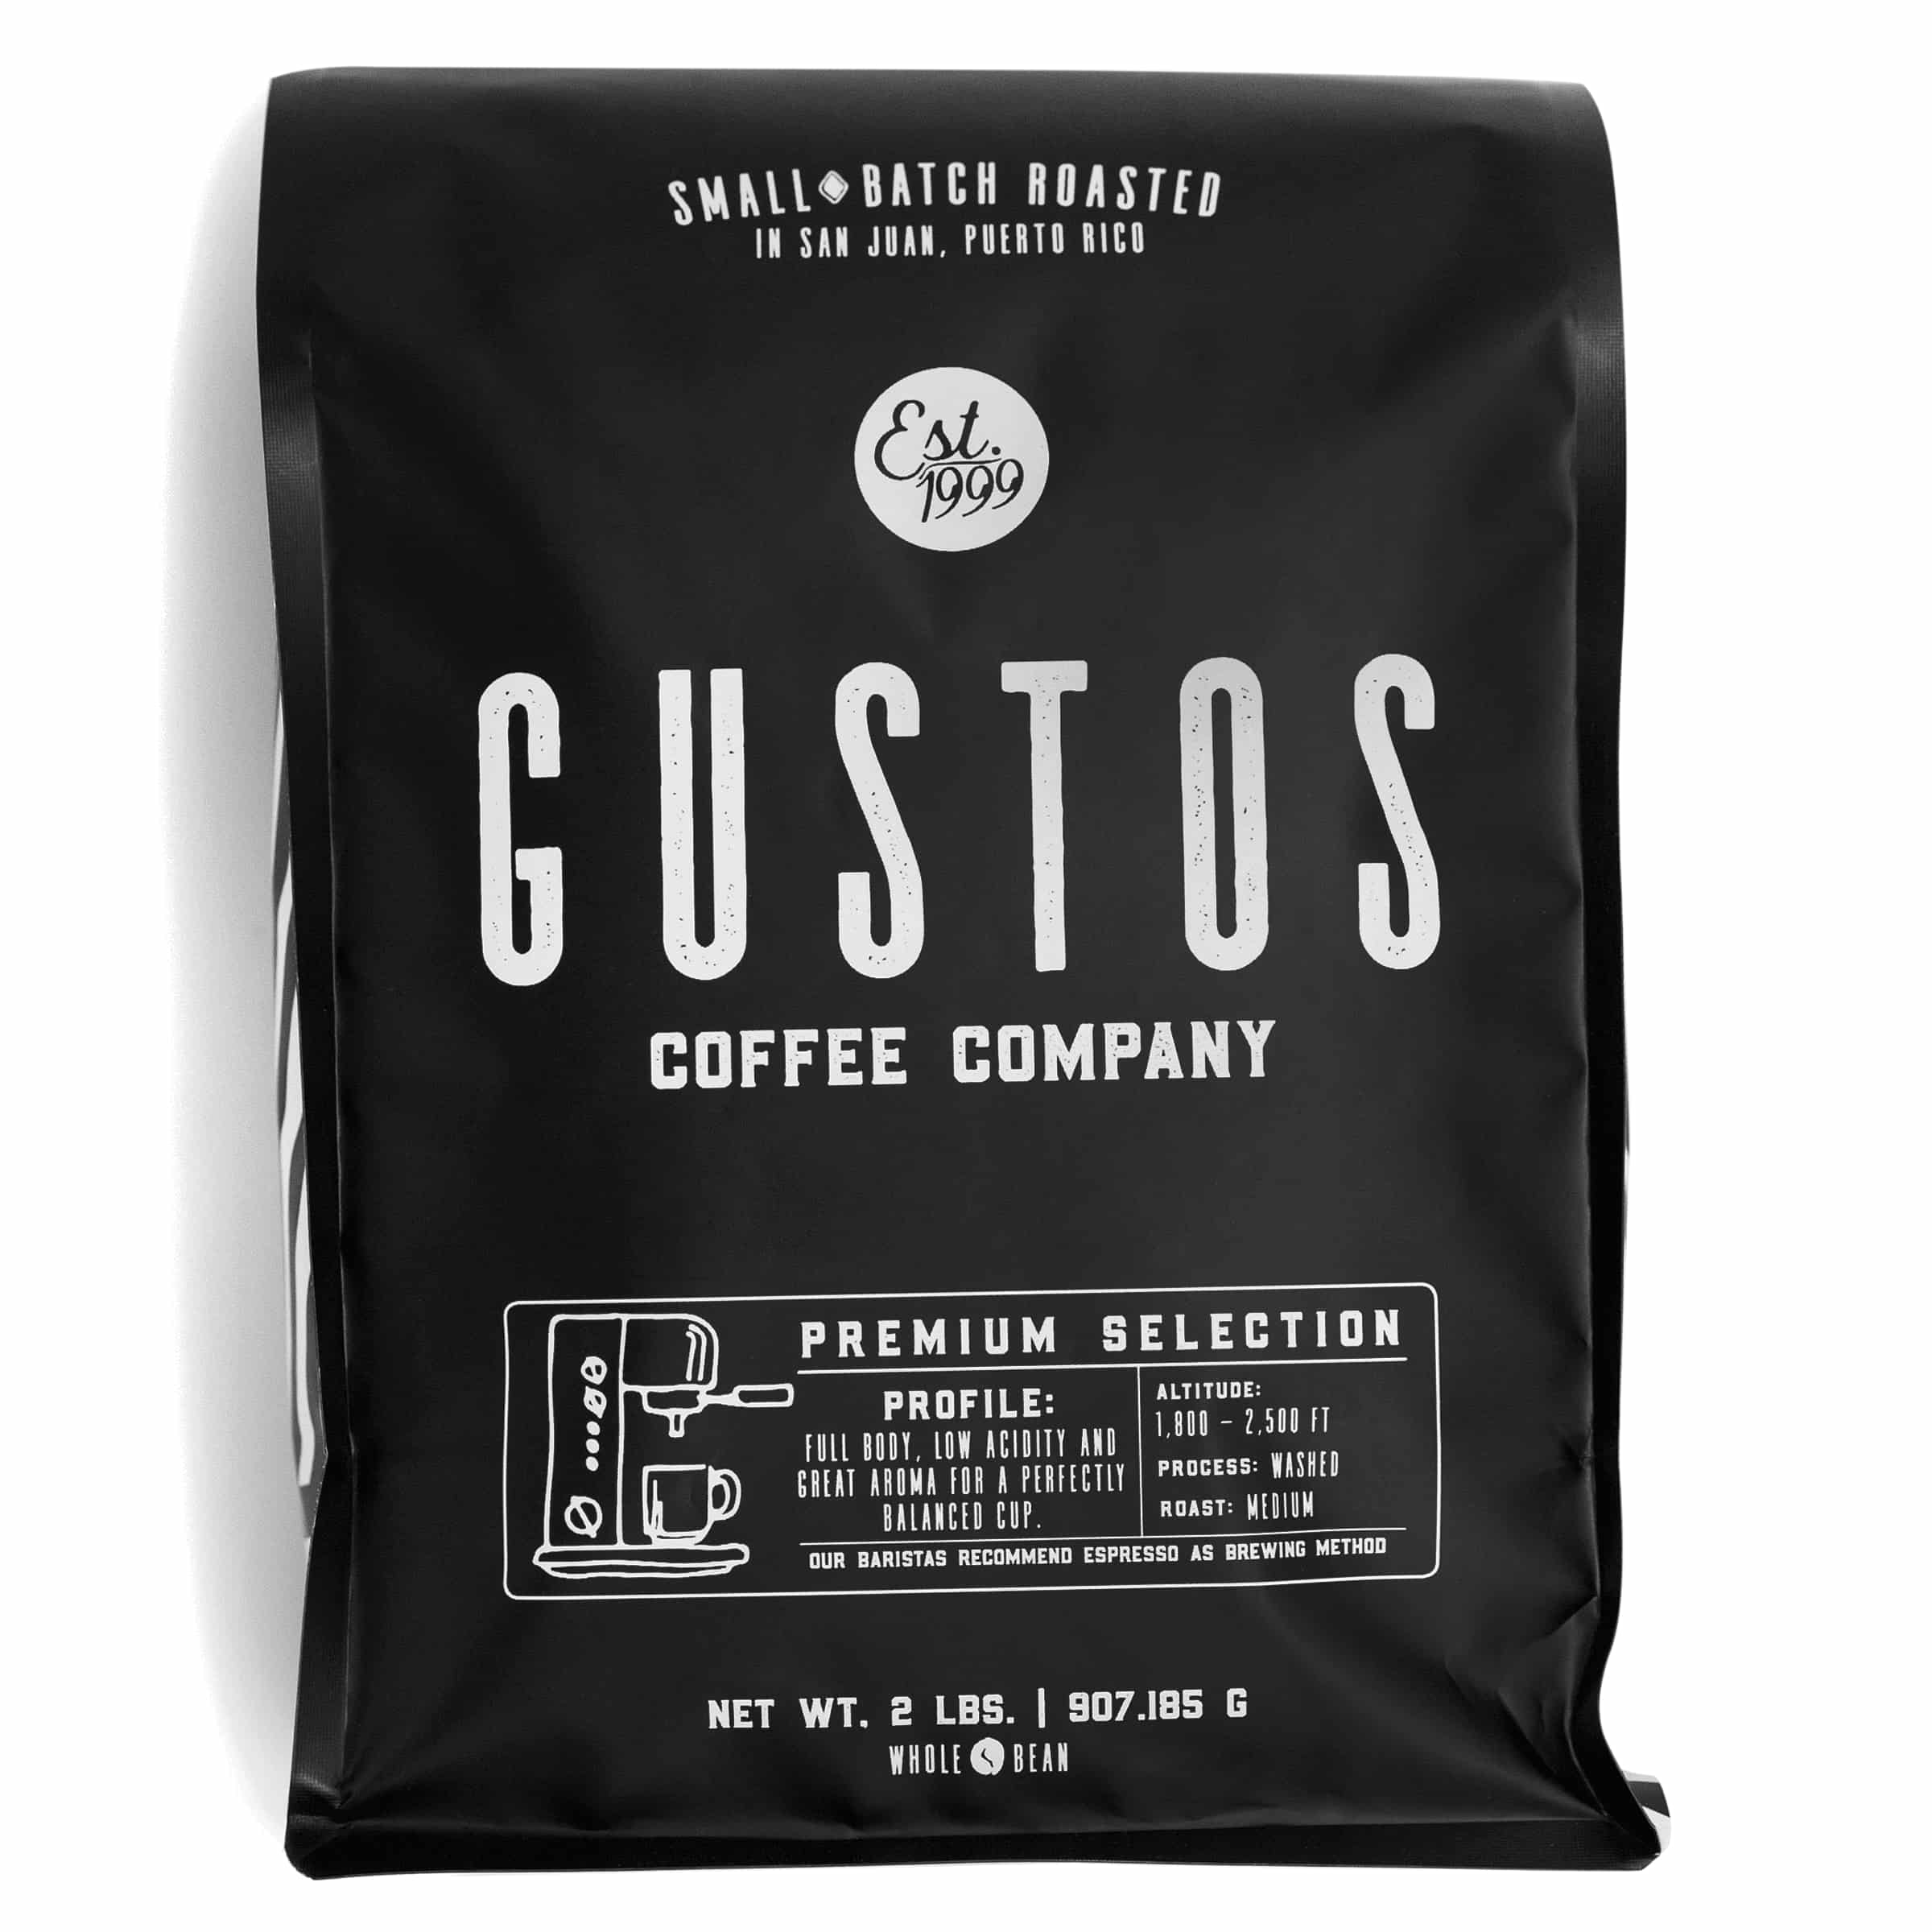 2lb bag of Premium Gourmet Coffee of the Vatican, popes and Kings Yauco PR by Gustos Coffee Co